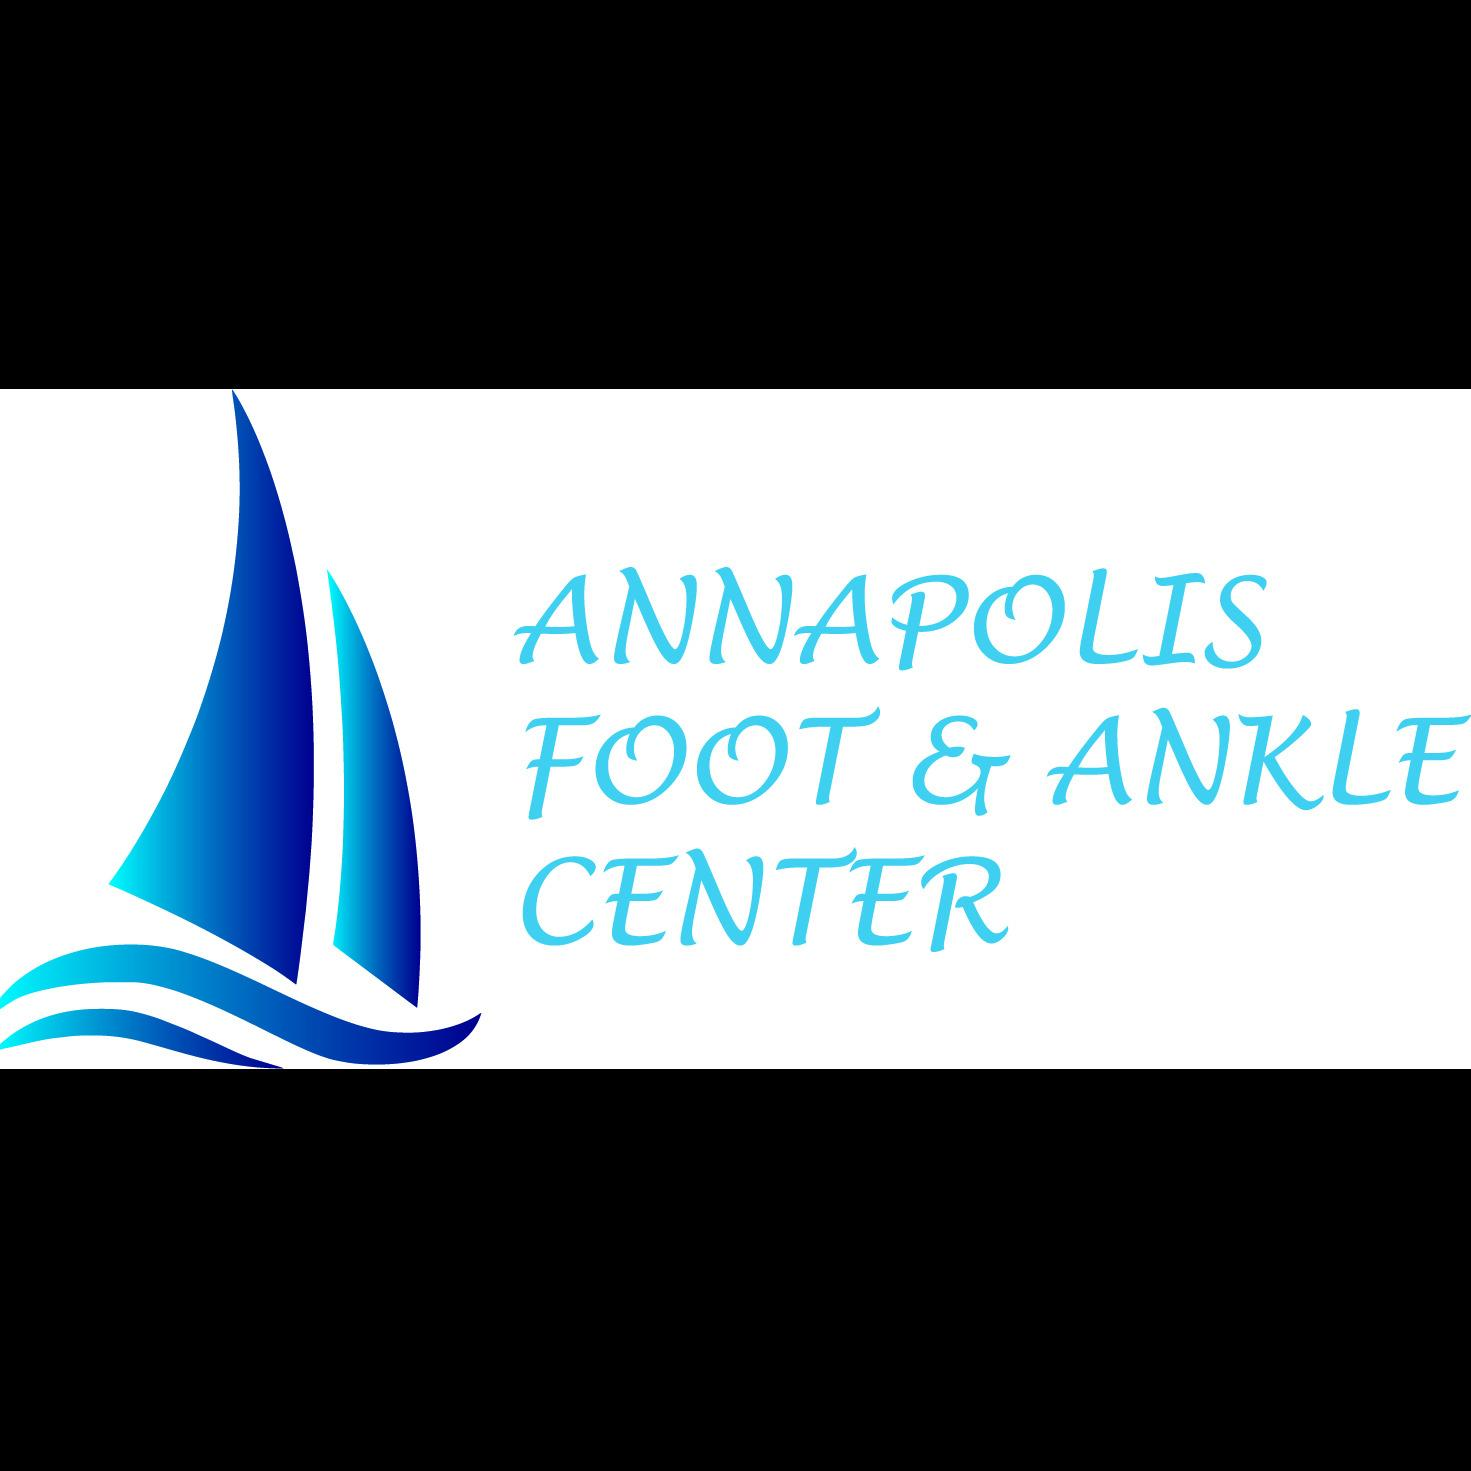 Annapolis Foot & Ankle Center